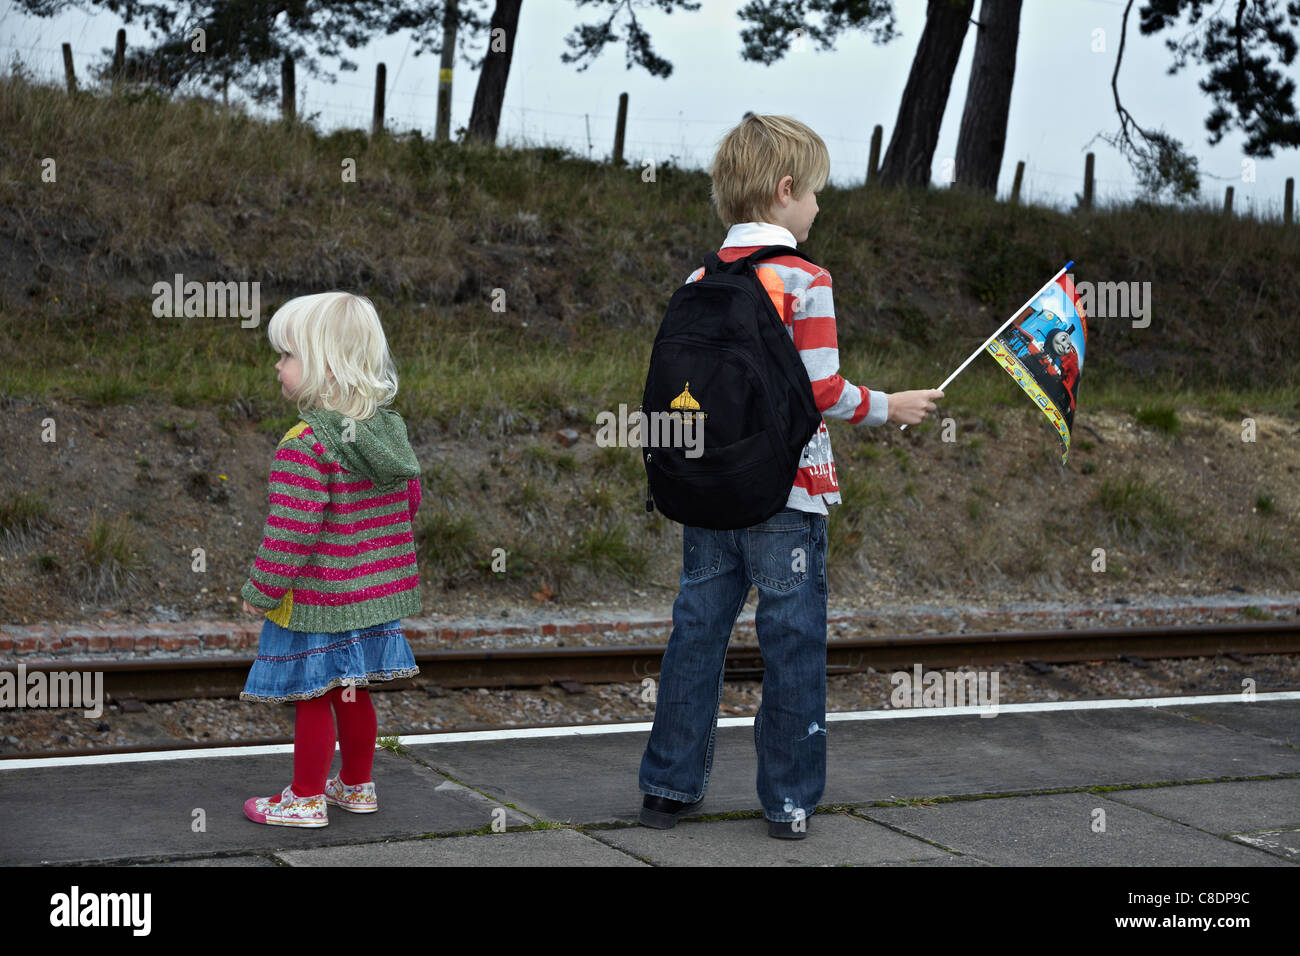 Older brother and younger sister wait patiently at the station platform for the arrival of Thomas the Tank Engine. - Stock Image